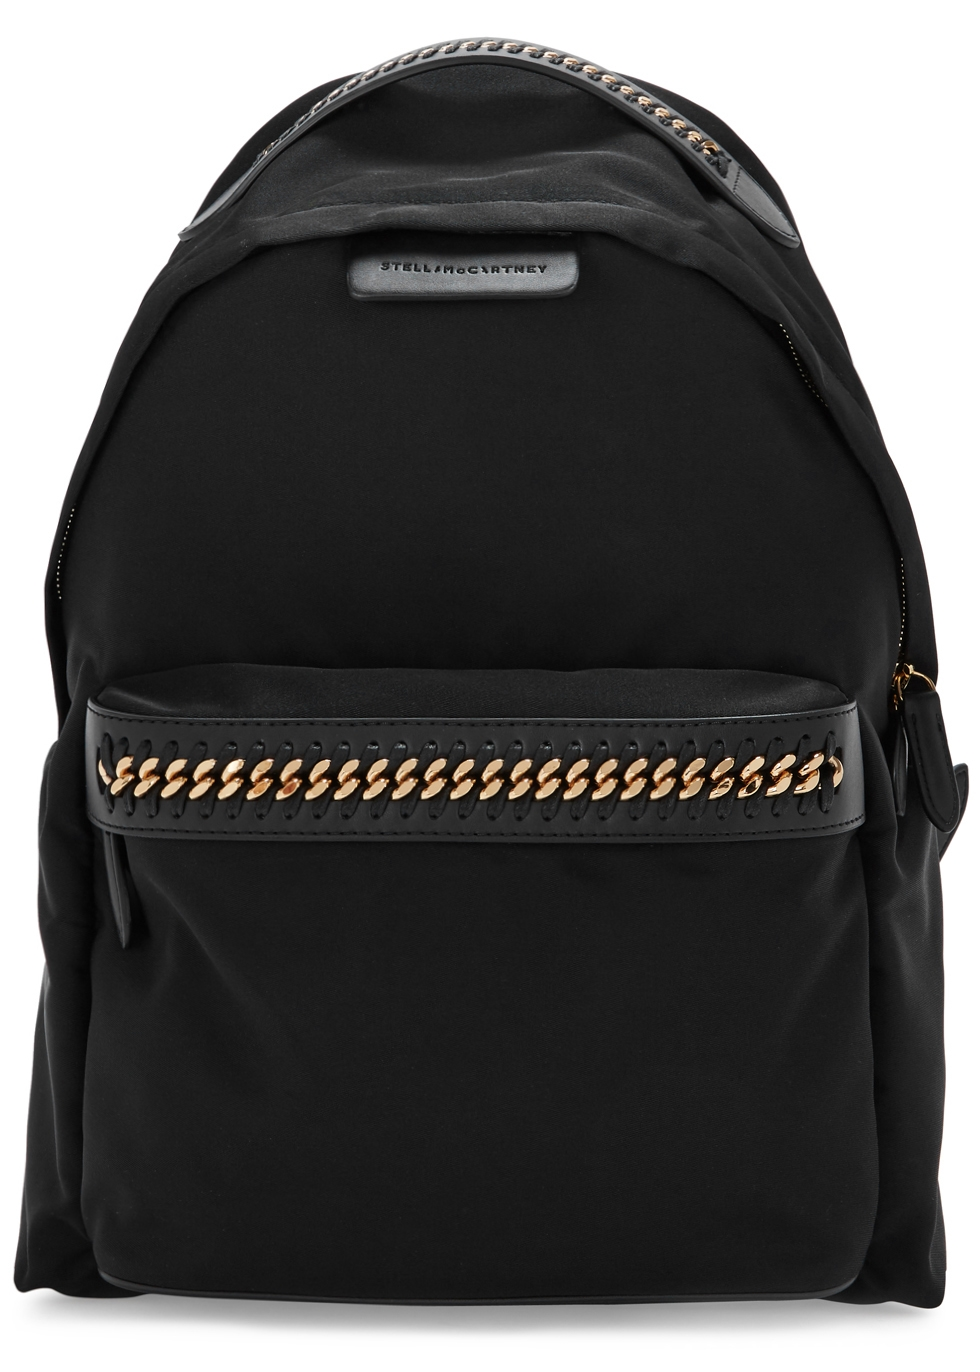 FALABELLA BLACK NYLON BACKPACK